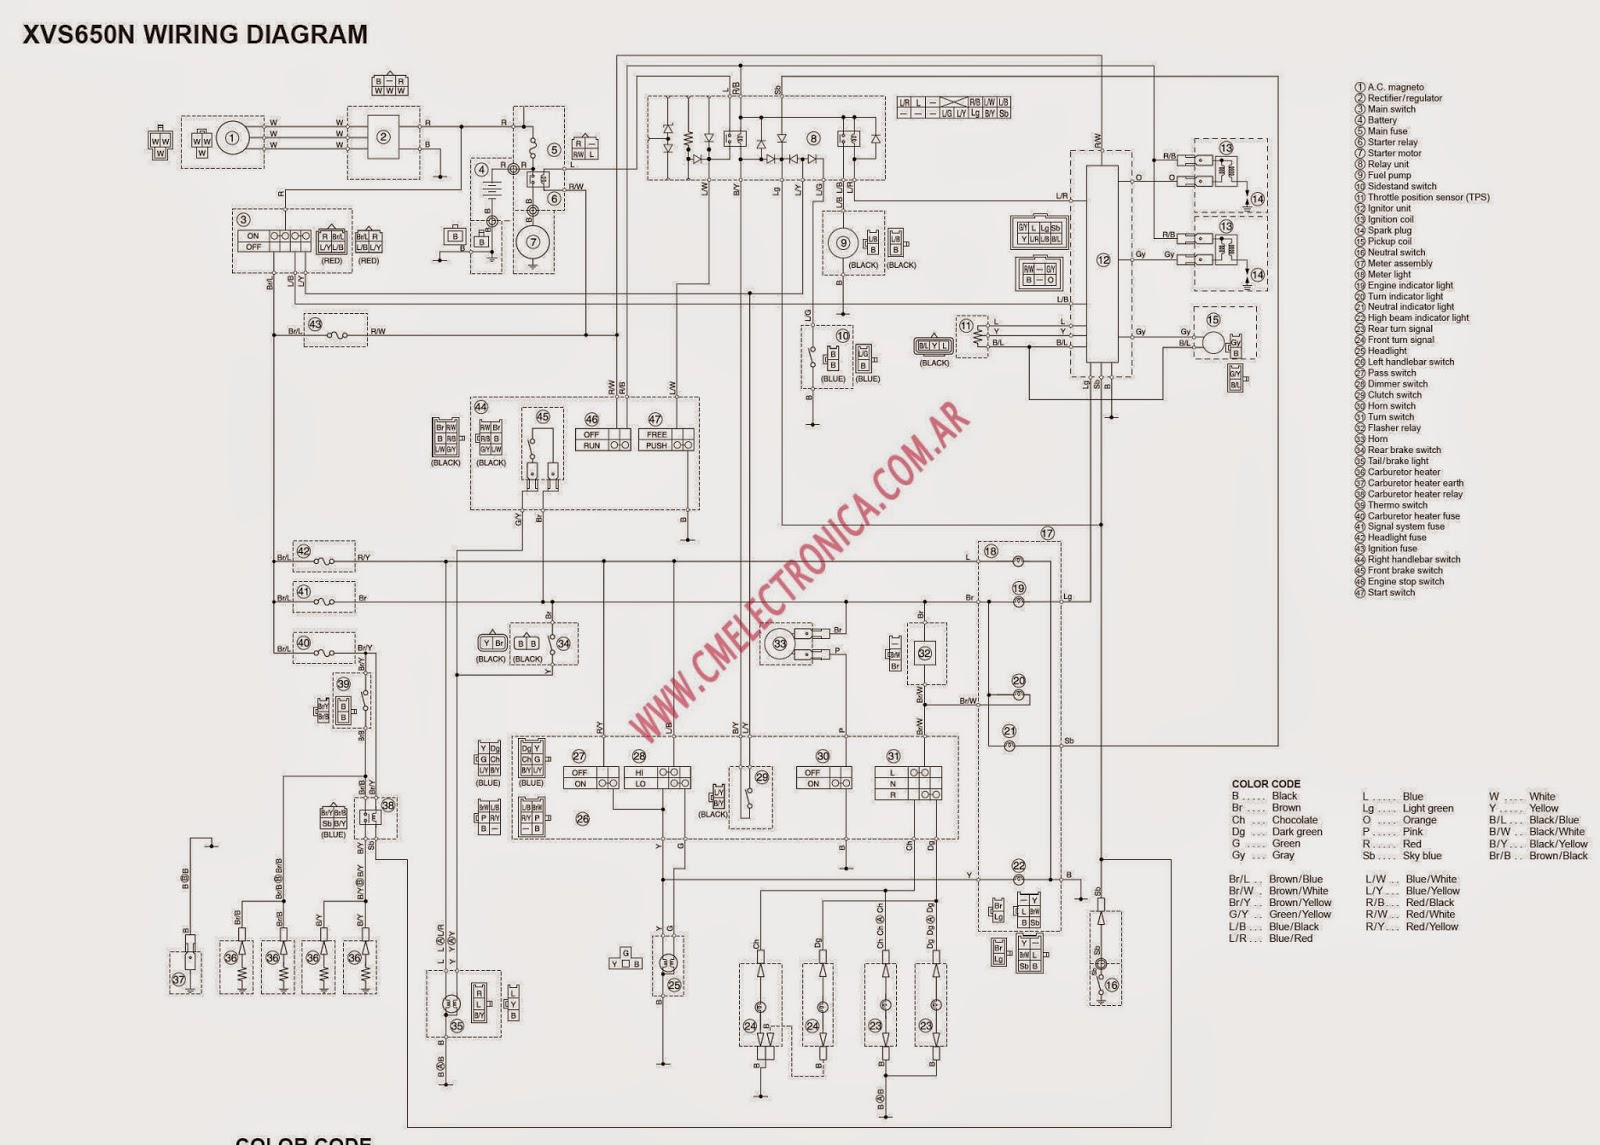 The Chop Shop: XVS650 Wiring Diagram